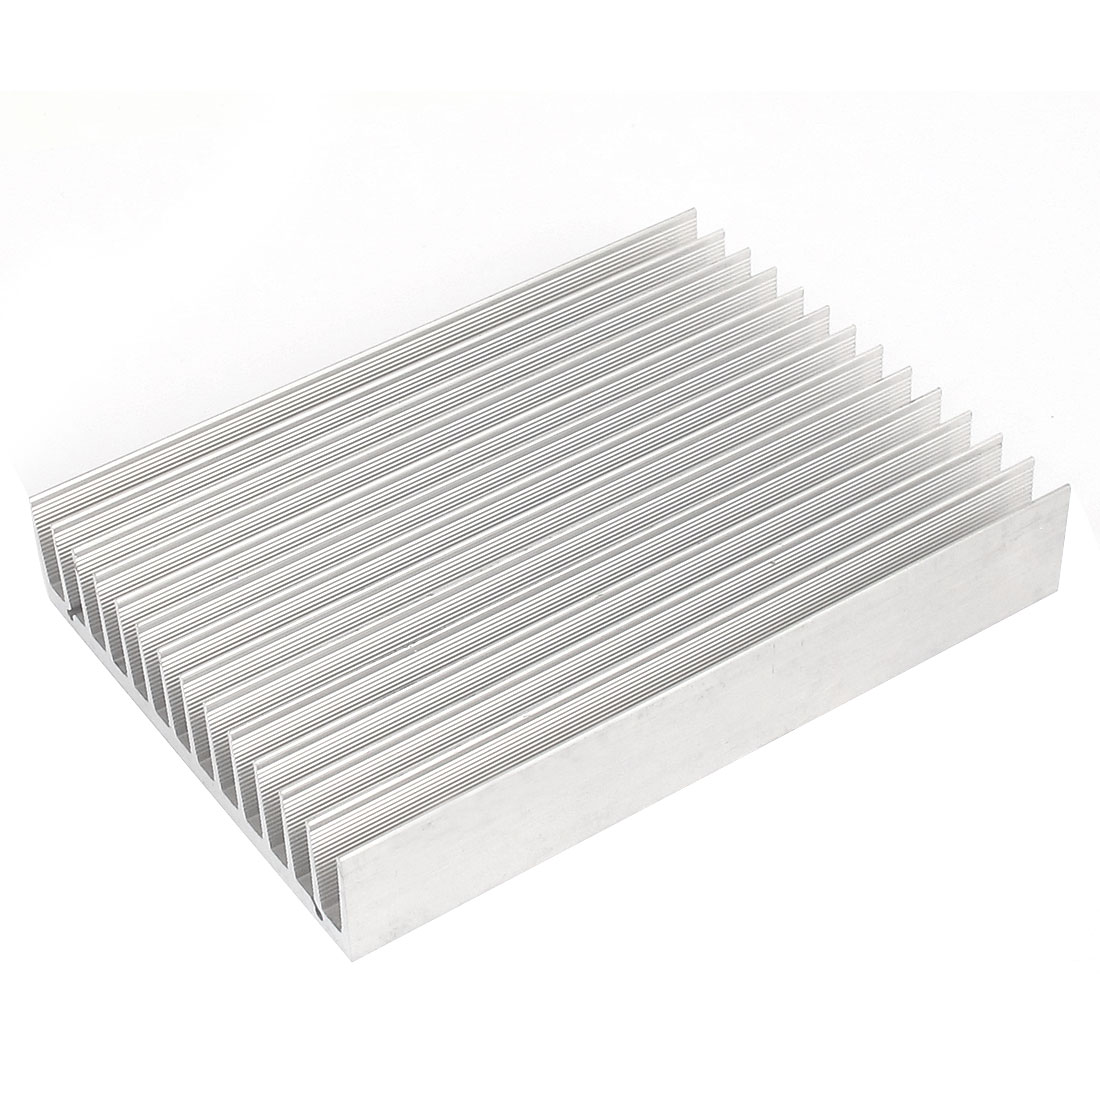 150mx110mx25mm Aluminum Rectangle Heat Diffuse Cooling Fin Heatsink